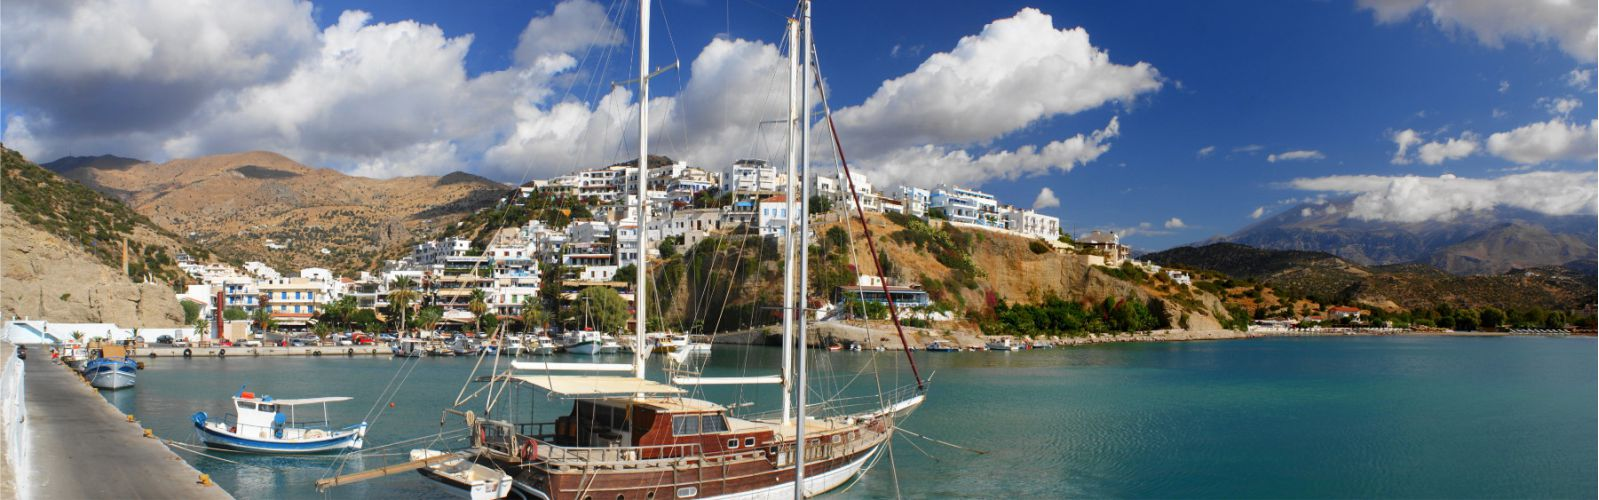 Panorama from the port of Agia Galini